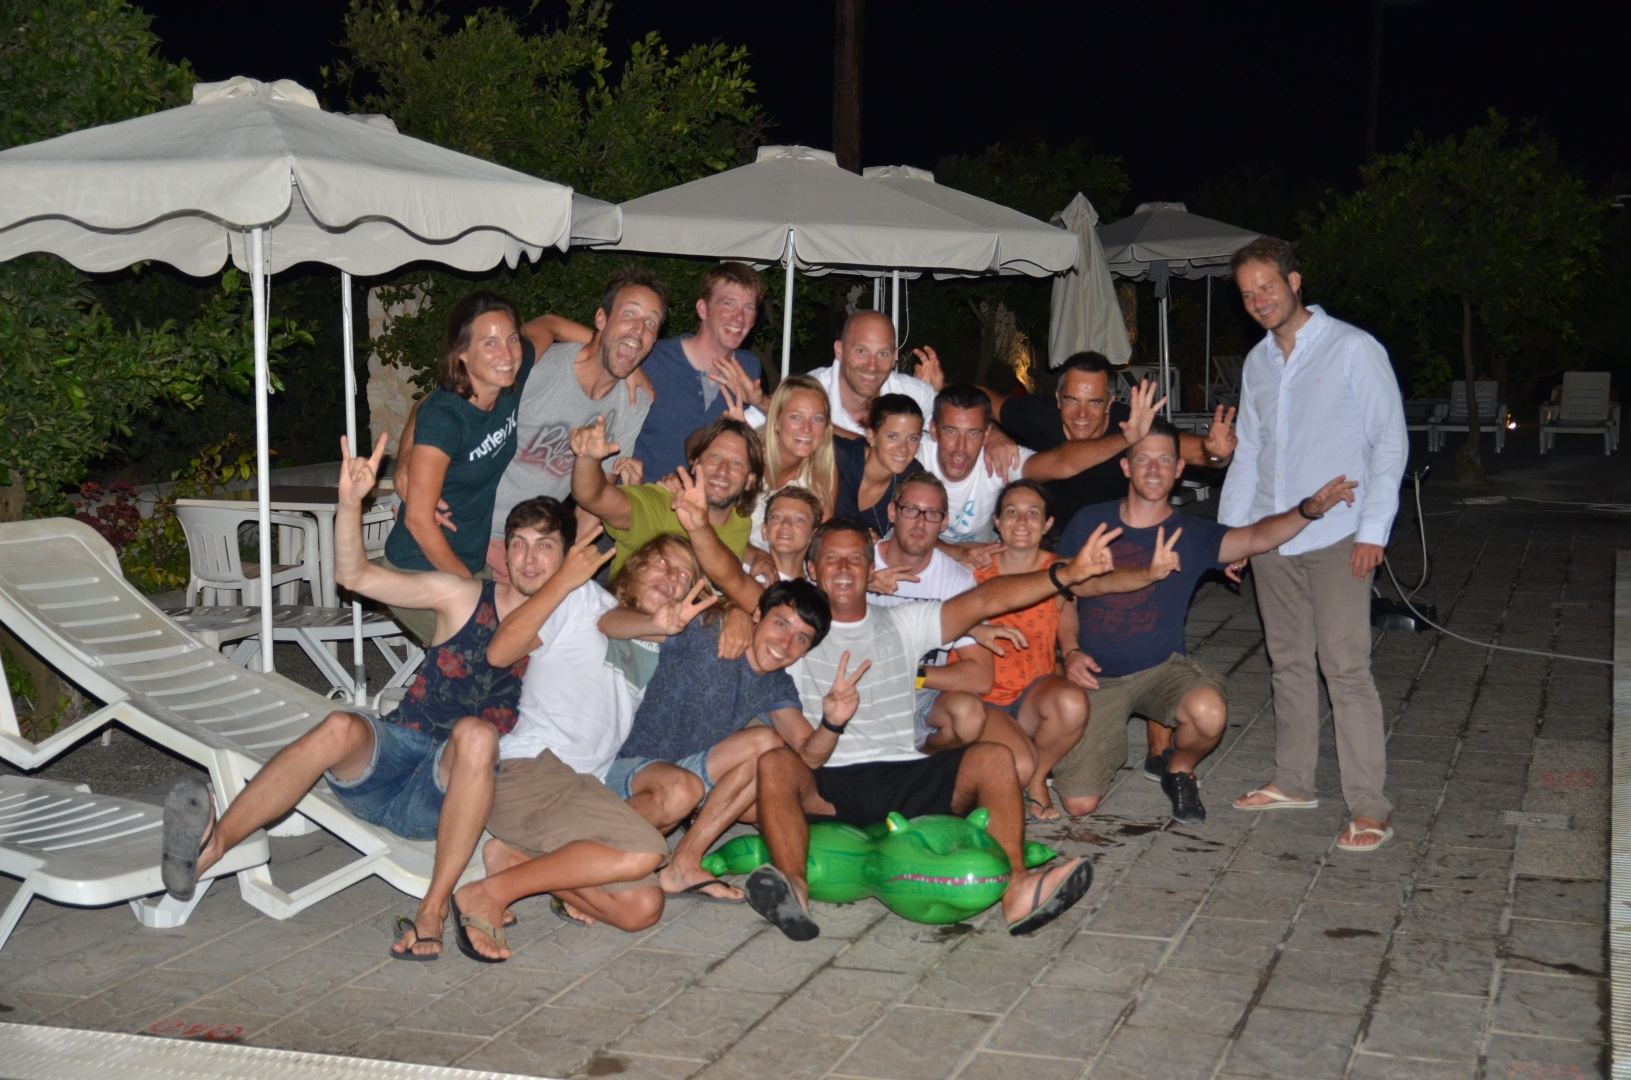 groupe aiorone rhodes 2015 (Large)